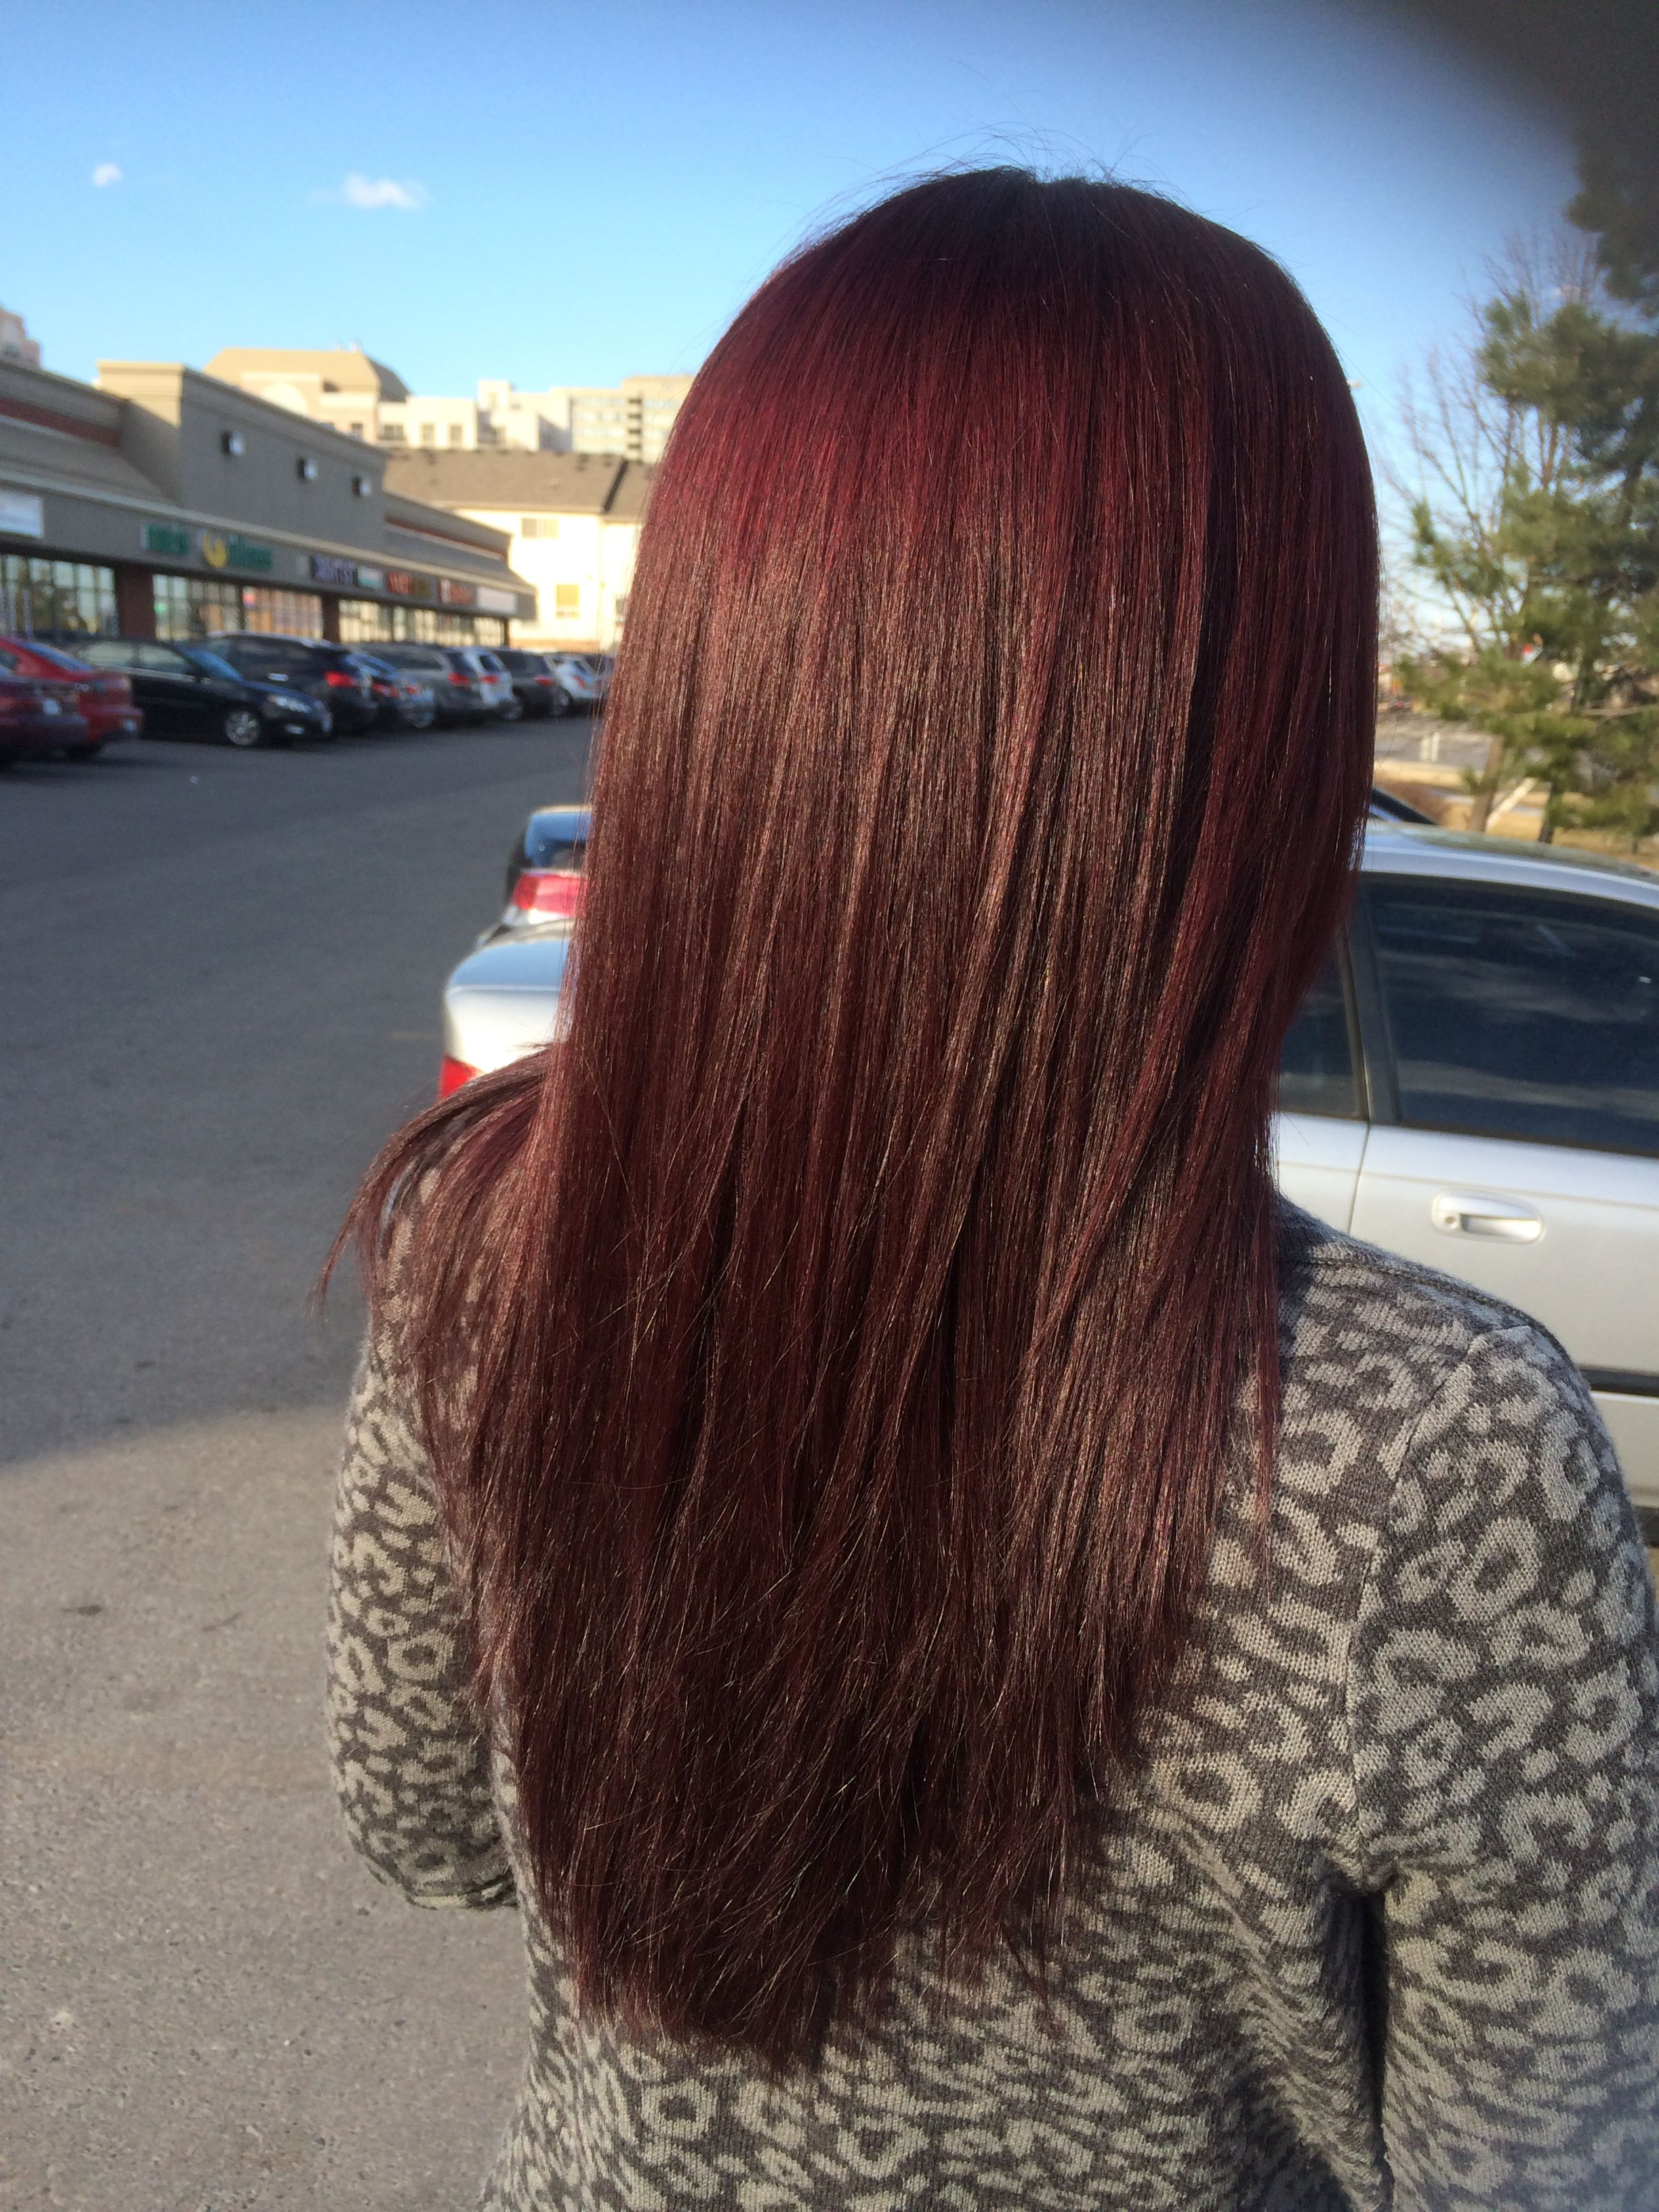 Red mahogany hair color nataliethehairstylist hair red mahogany hair color nataliethehairstylist nvjuhfo Images